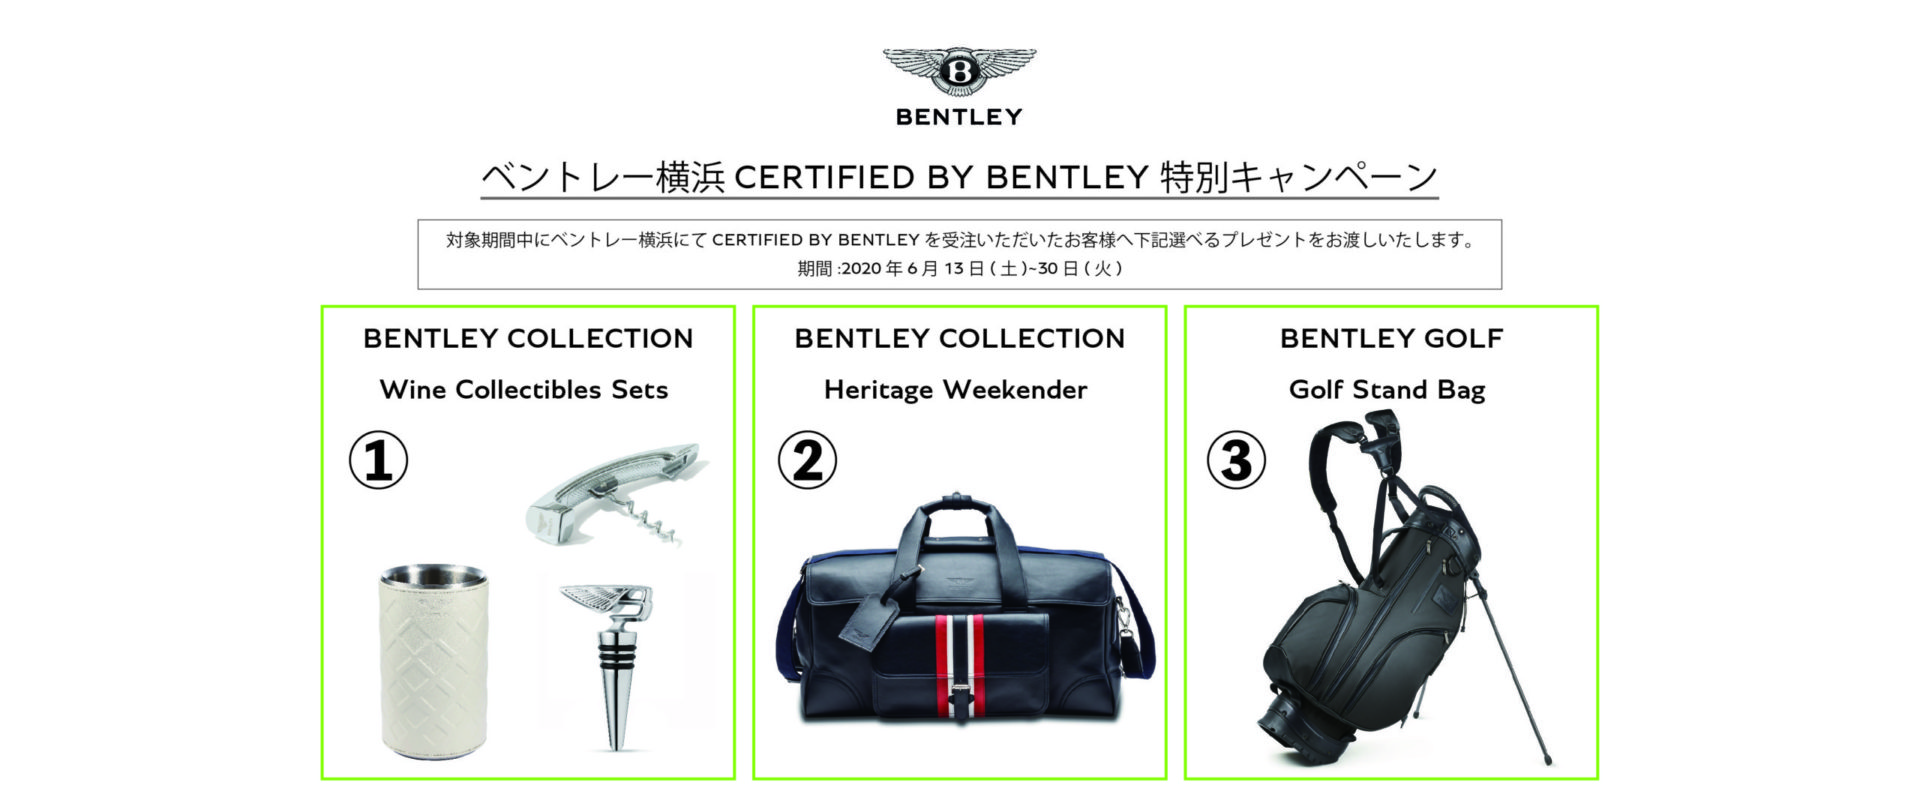 【Special Offer】期間限定!CERTIFIED BY BENTLEY特別キャンペーン